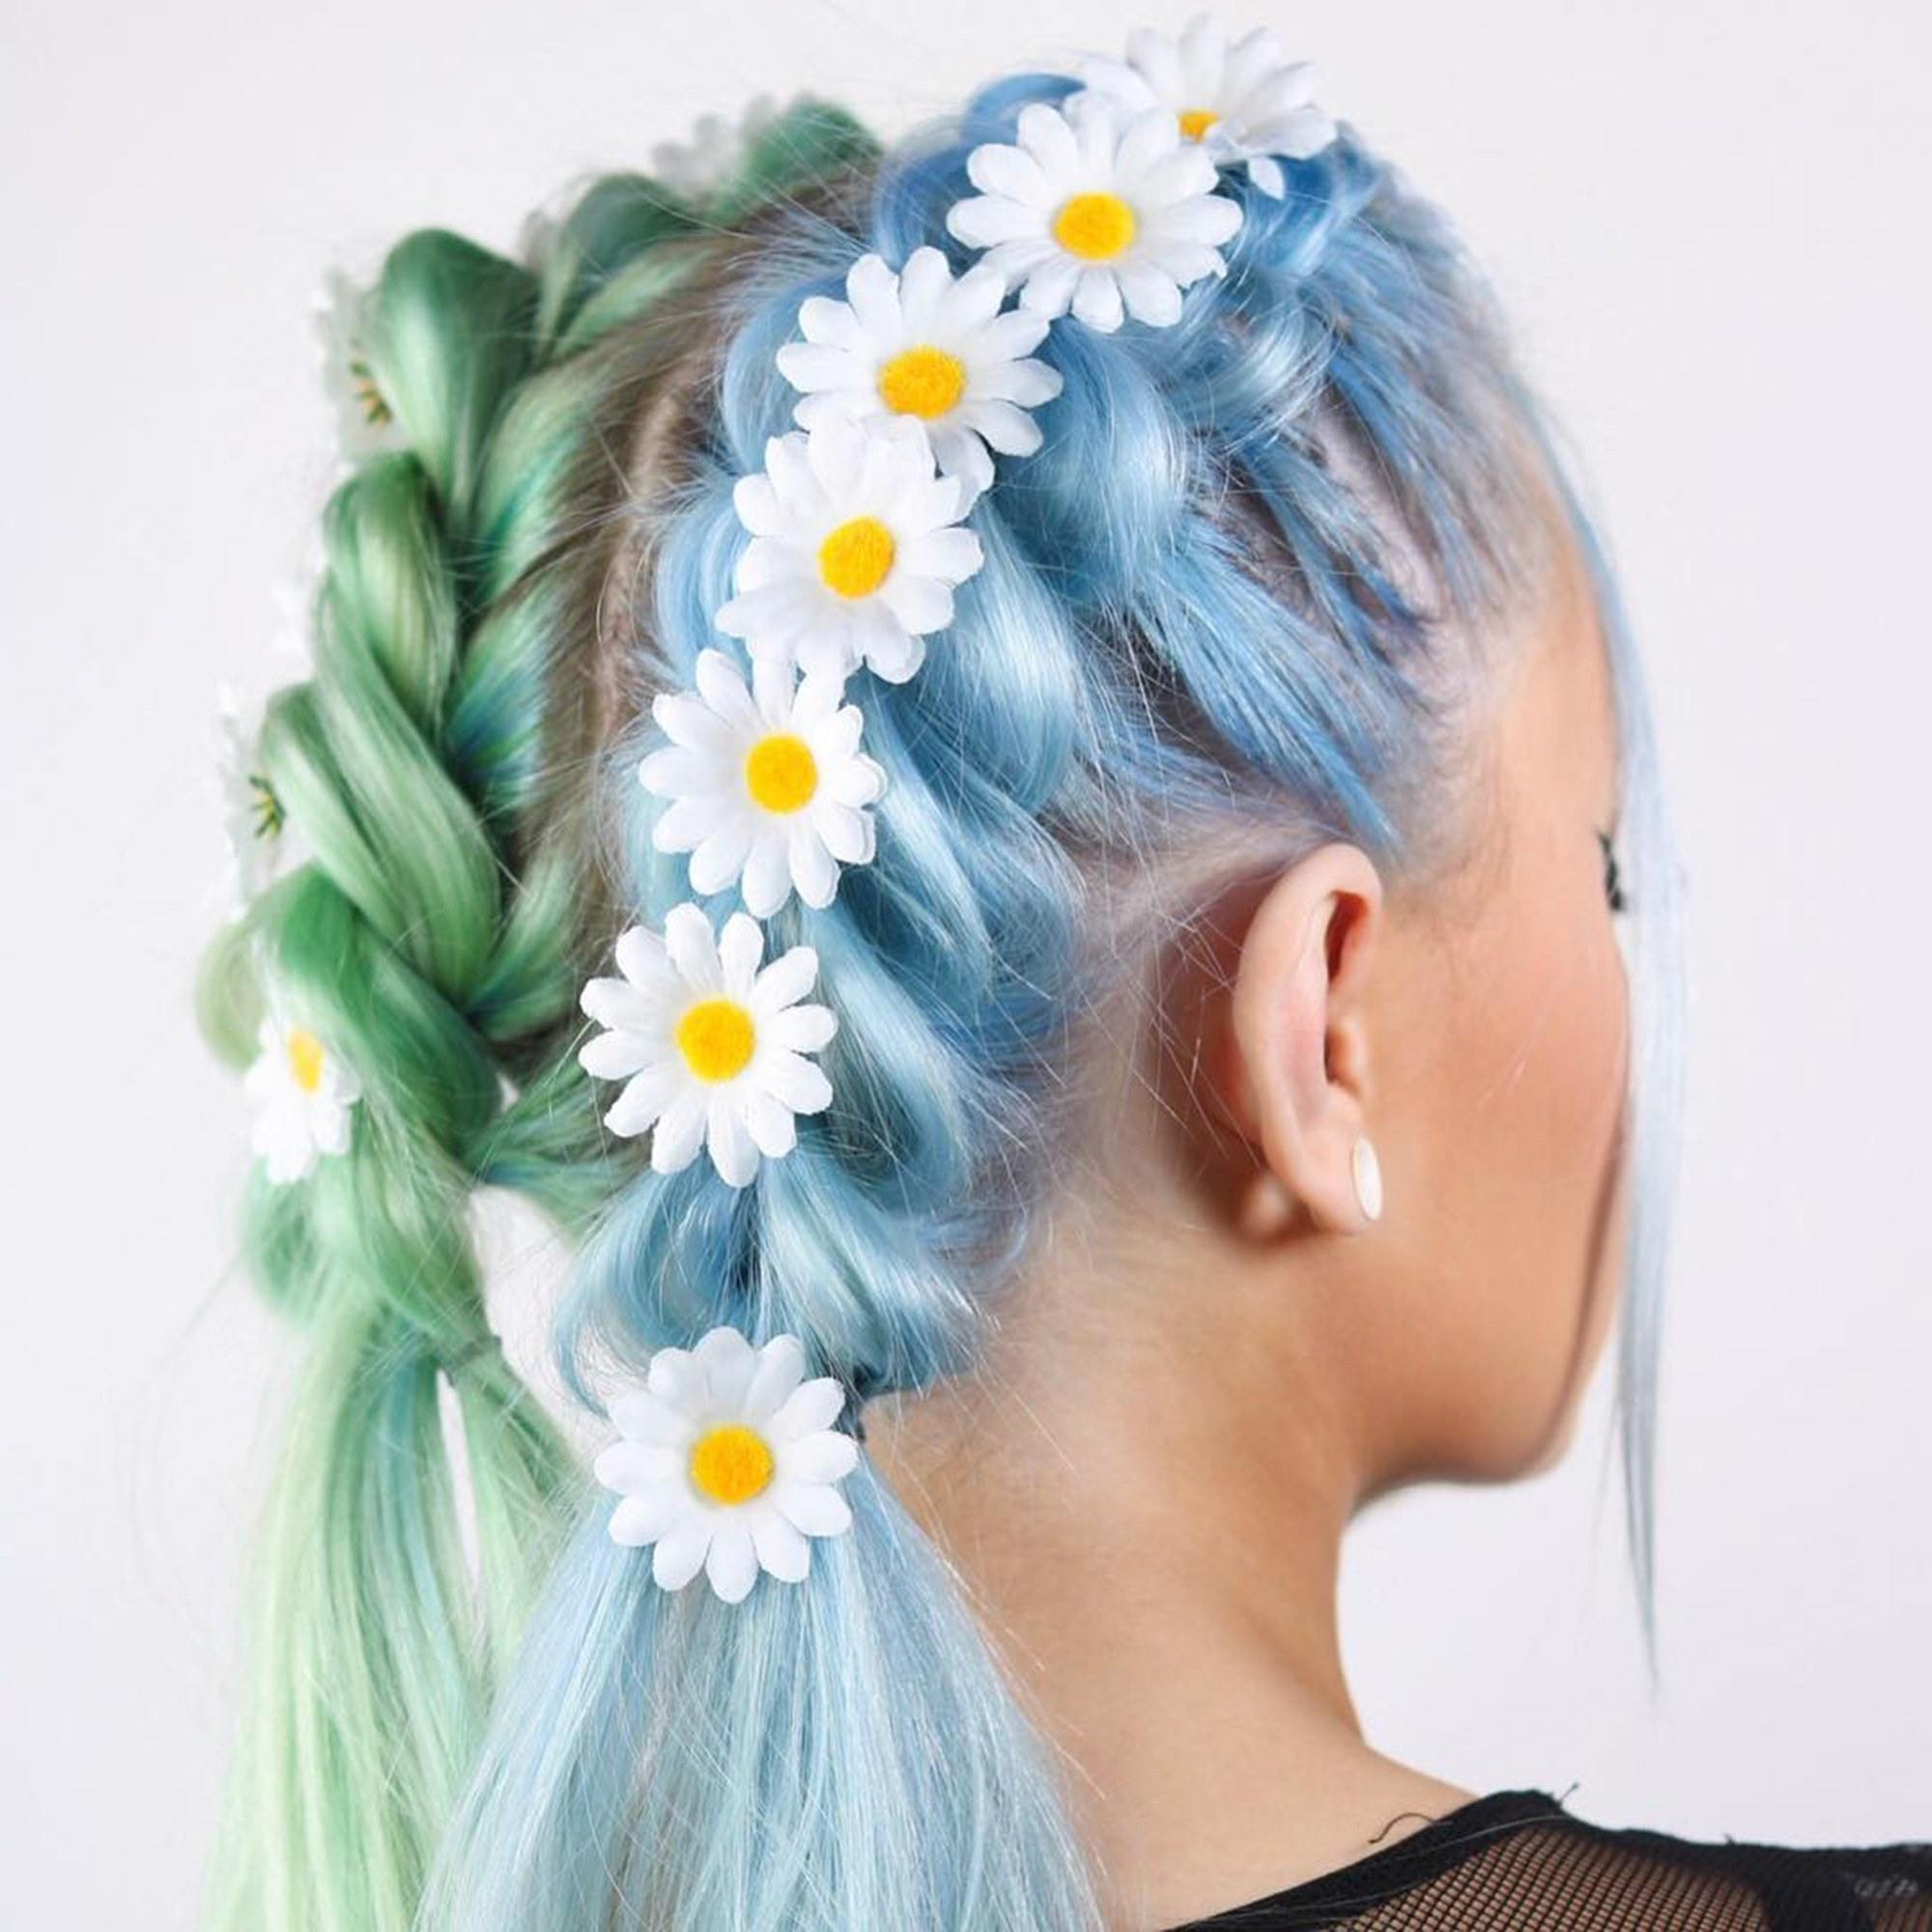 Favorite Cotton Candy Colors Blend Mermaid Braid Hairstyles Throughout 20 Festival Hairstyle Ideas For 2018 – Music Festival Hair (View 9 of 20)